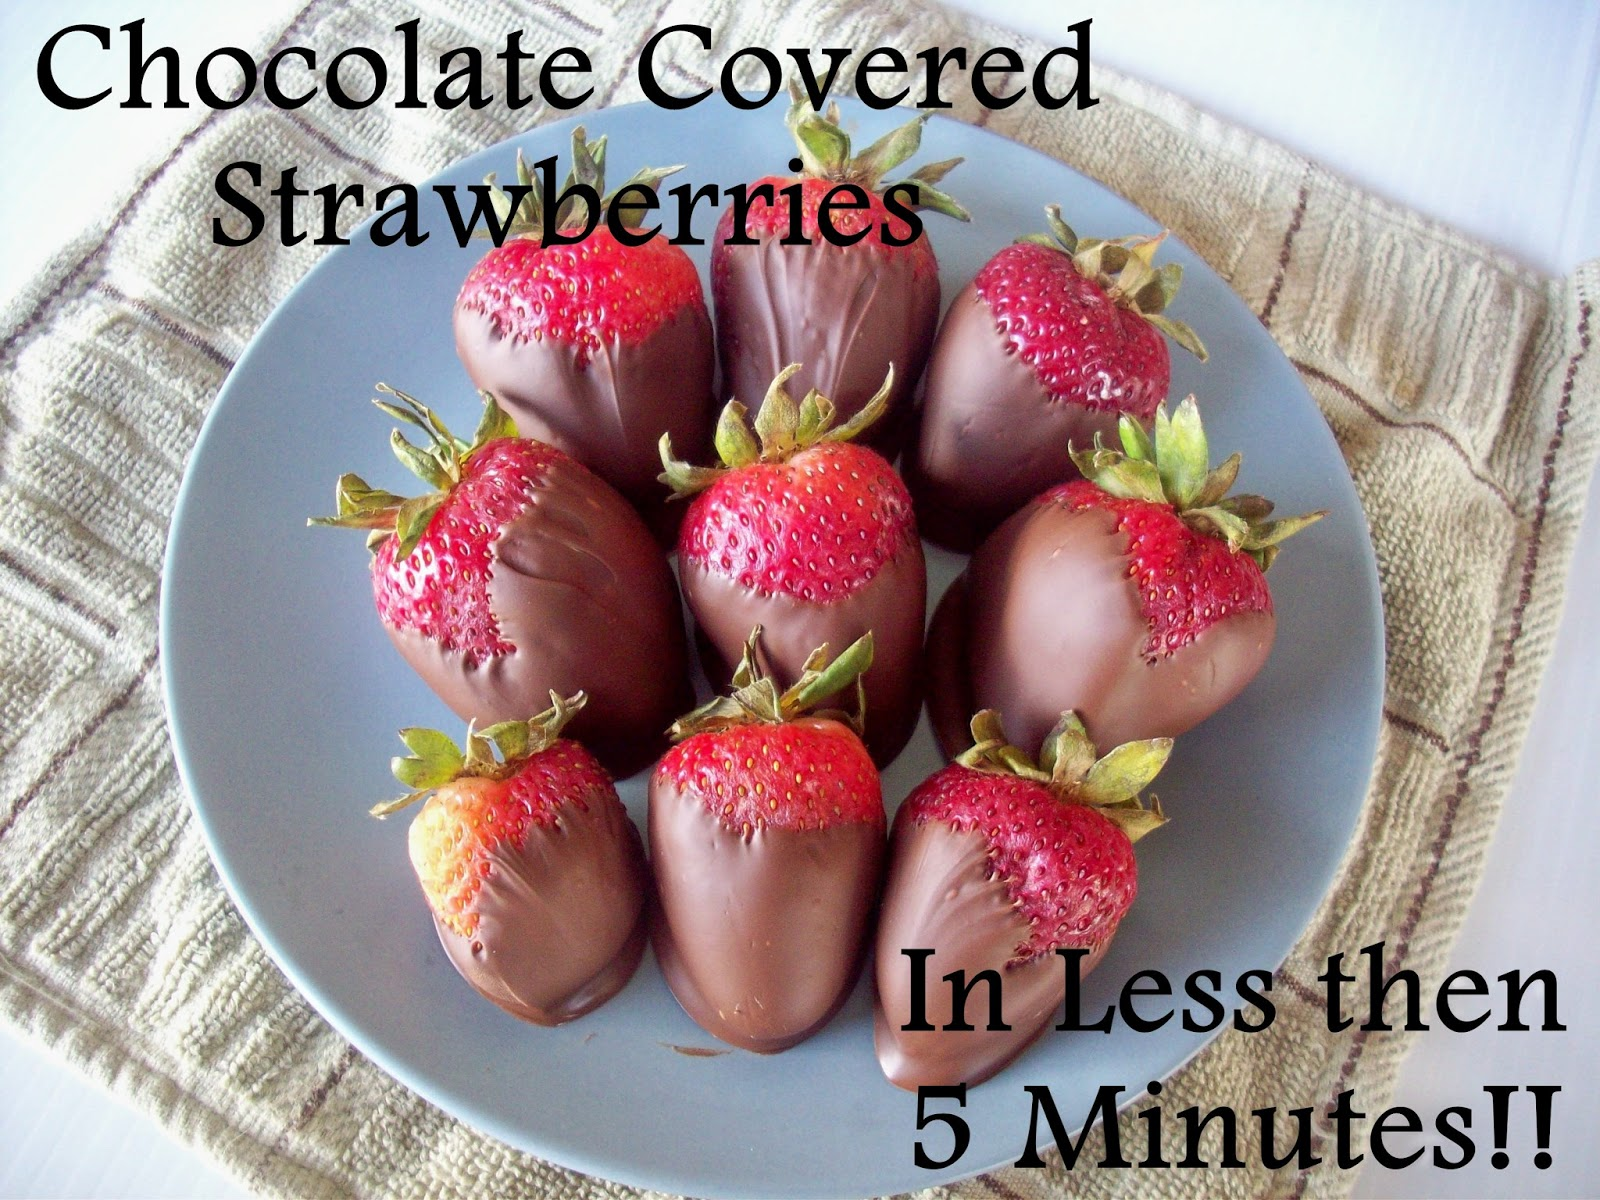 Chocolate Dipped Strawberries In Less Then 5 Minutes